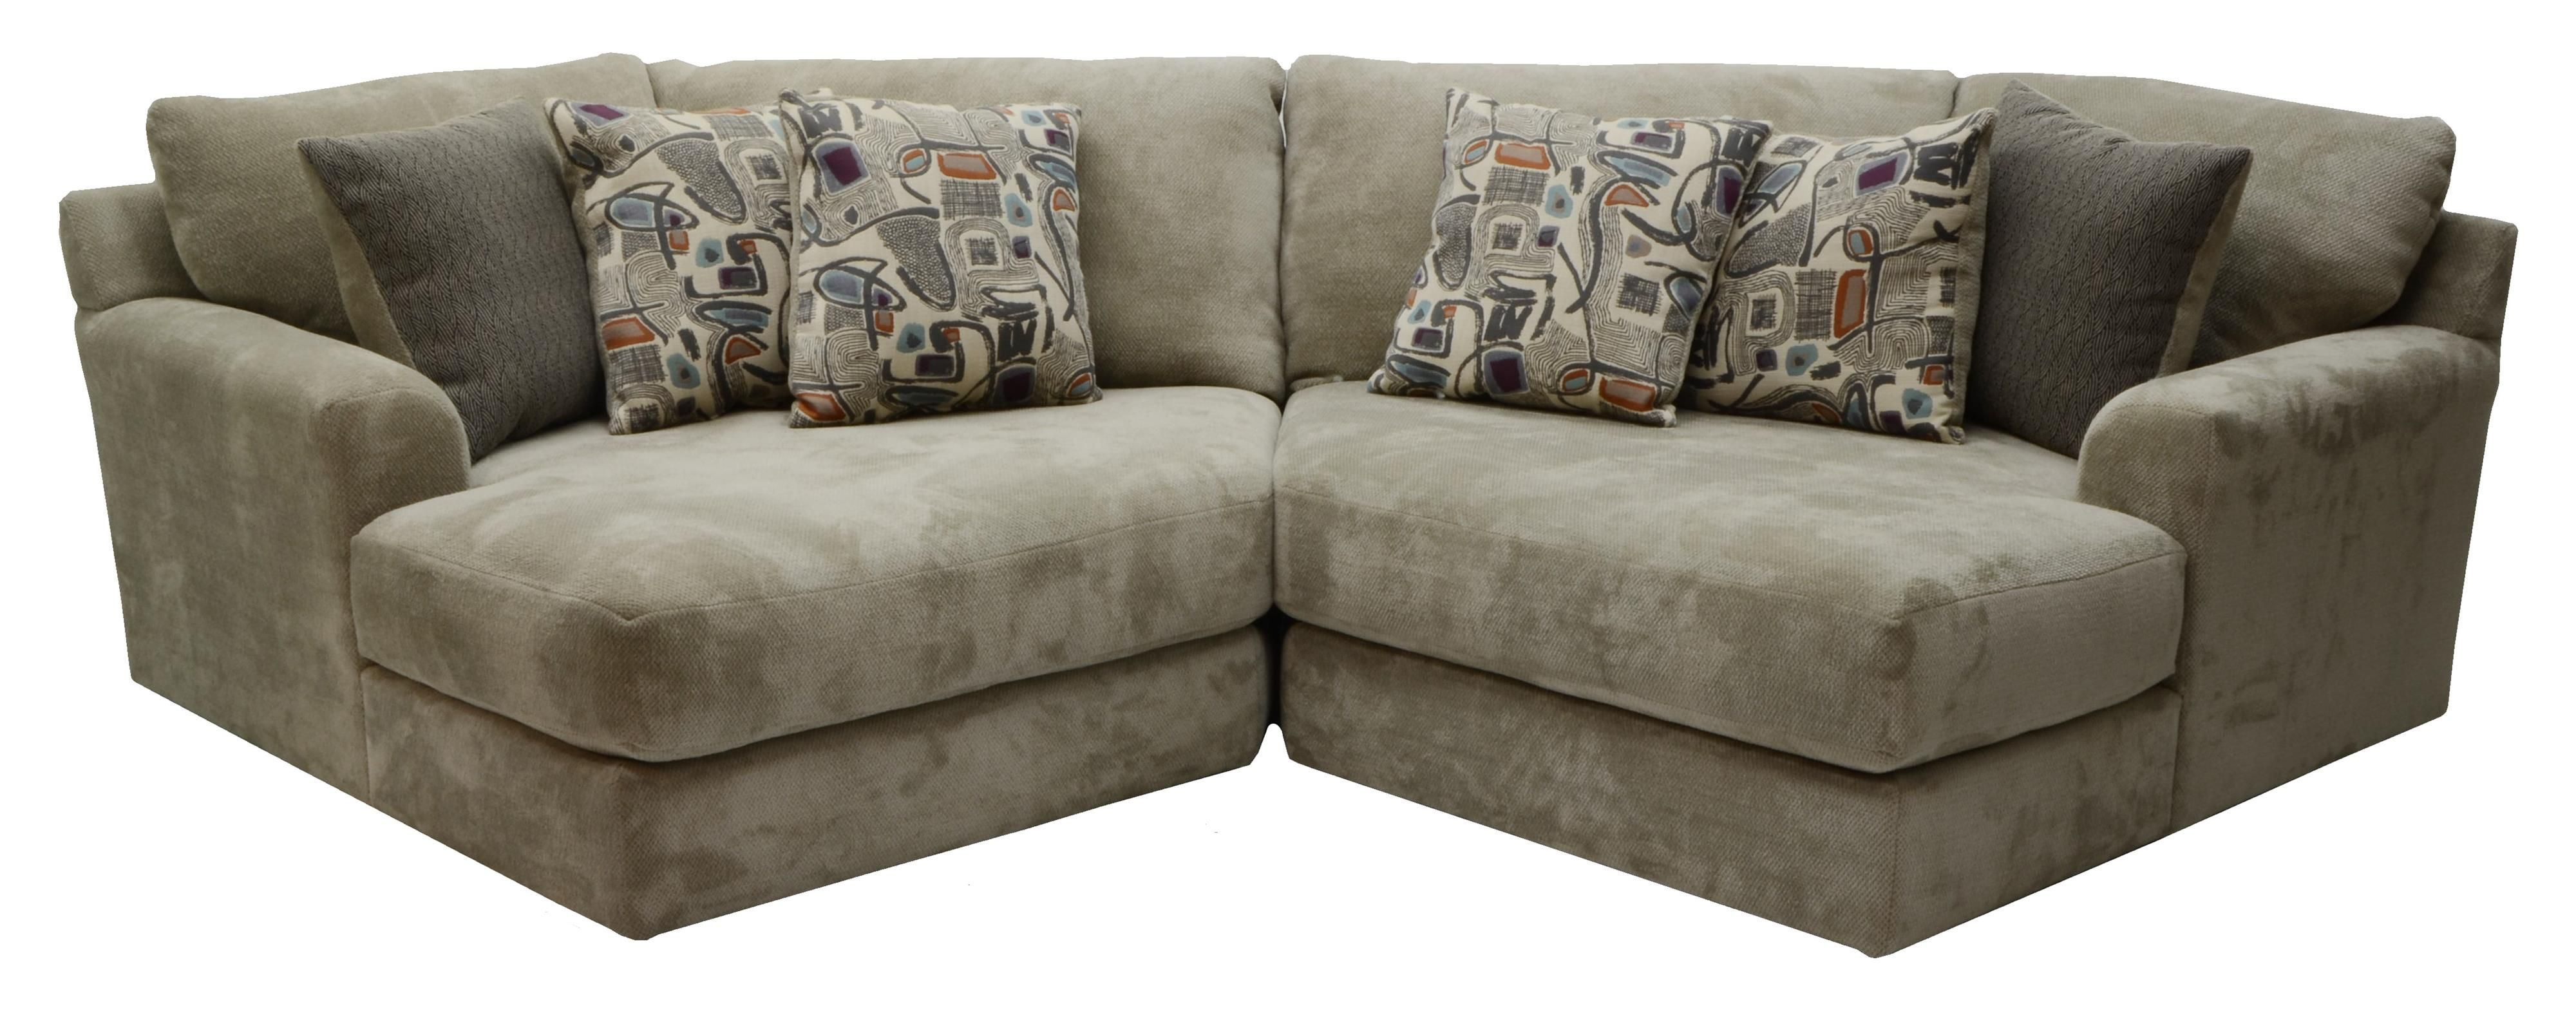 Malibu Two Seat Sectional By Jackson Furniture Sectional Sofa